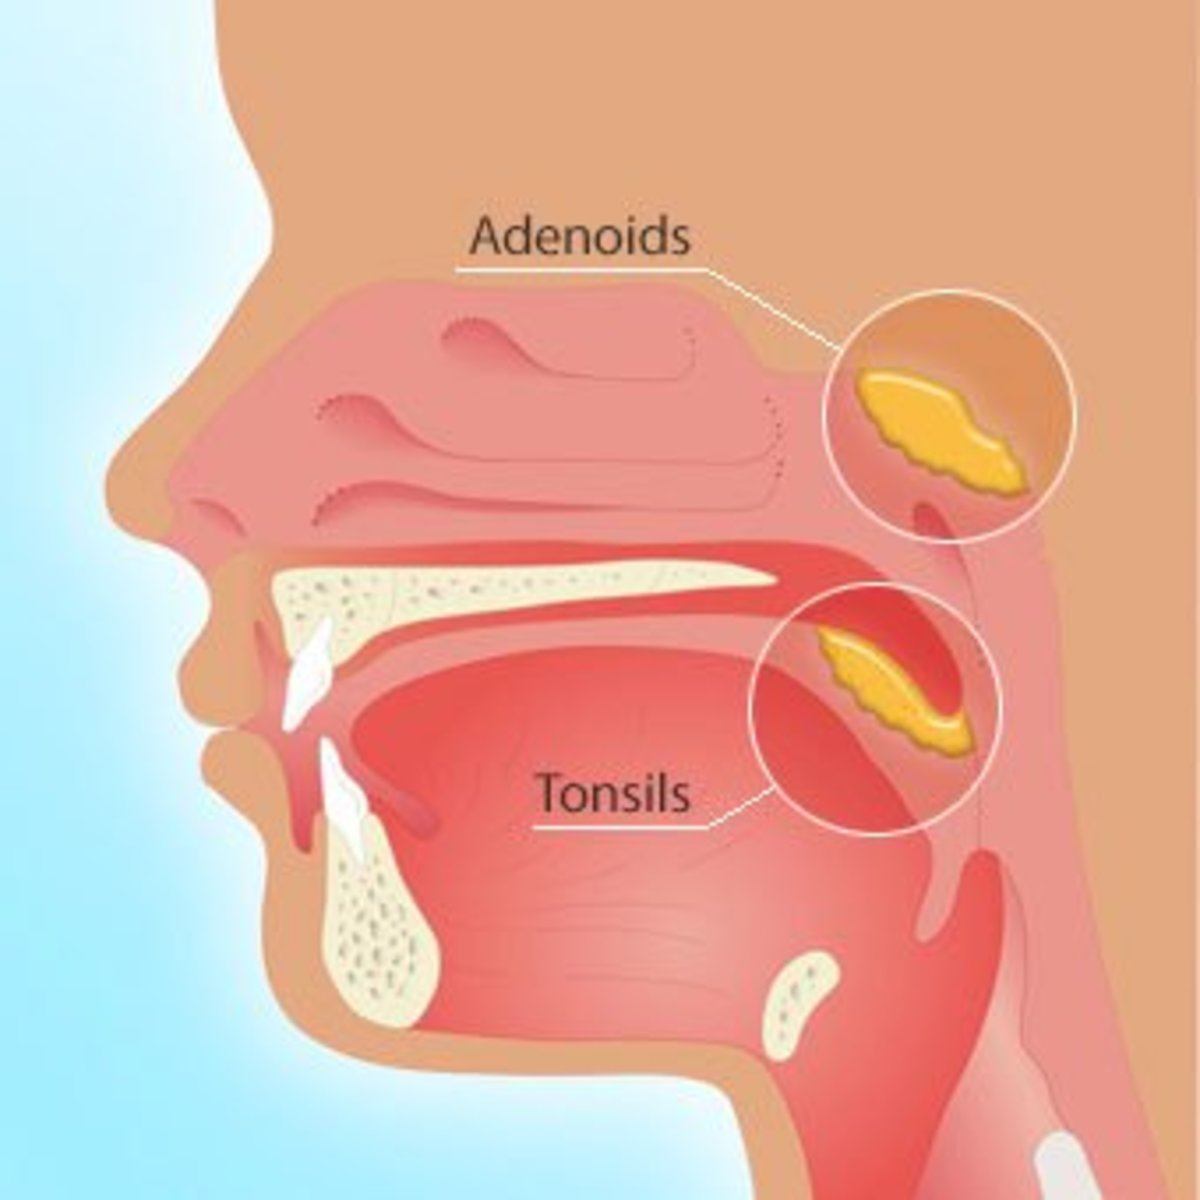 tonsils-and-adenoids-removed